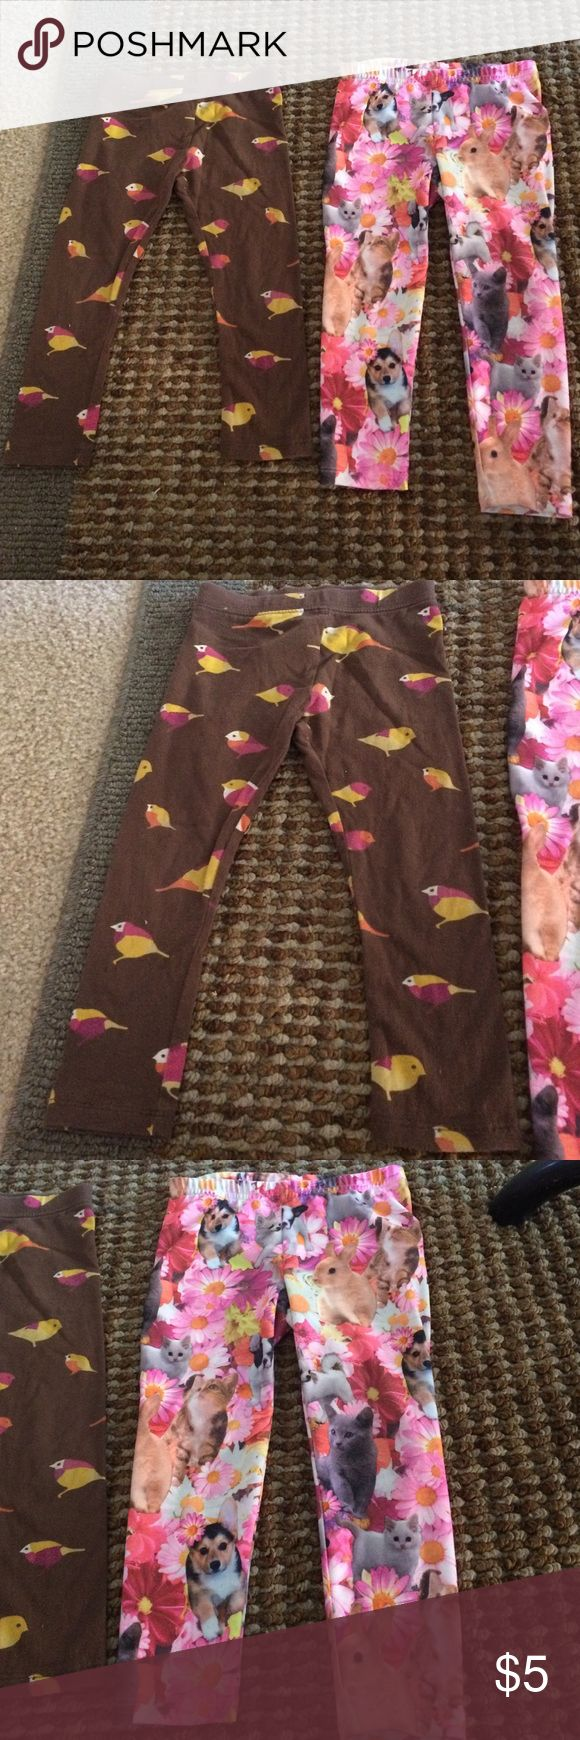 Legging bundle Brown with doves, old navy legging, and puppies, kittens, and bunnies jumping beans leggings. Preloved so please ask questions. No holes or stains. Old Navy Bottoms Leggings